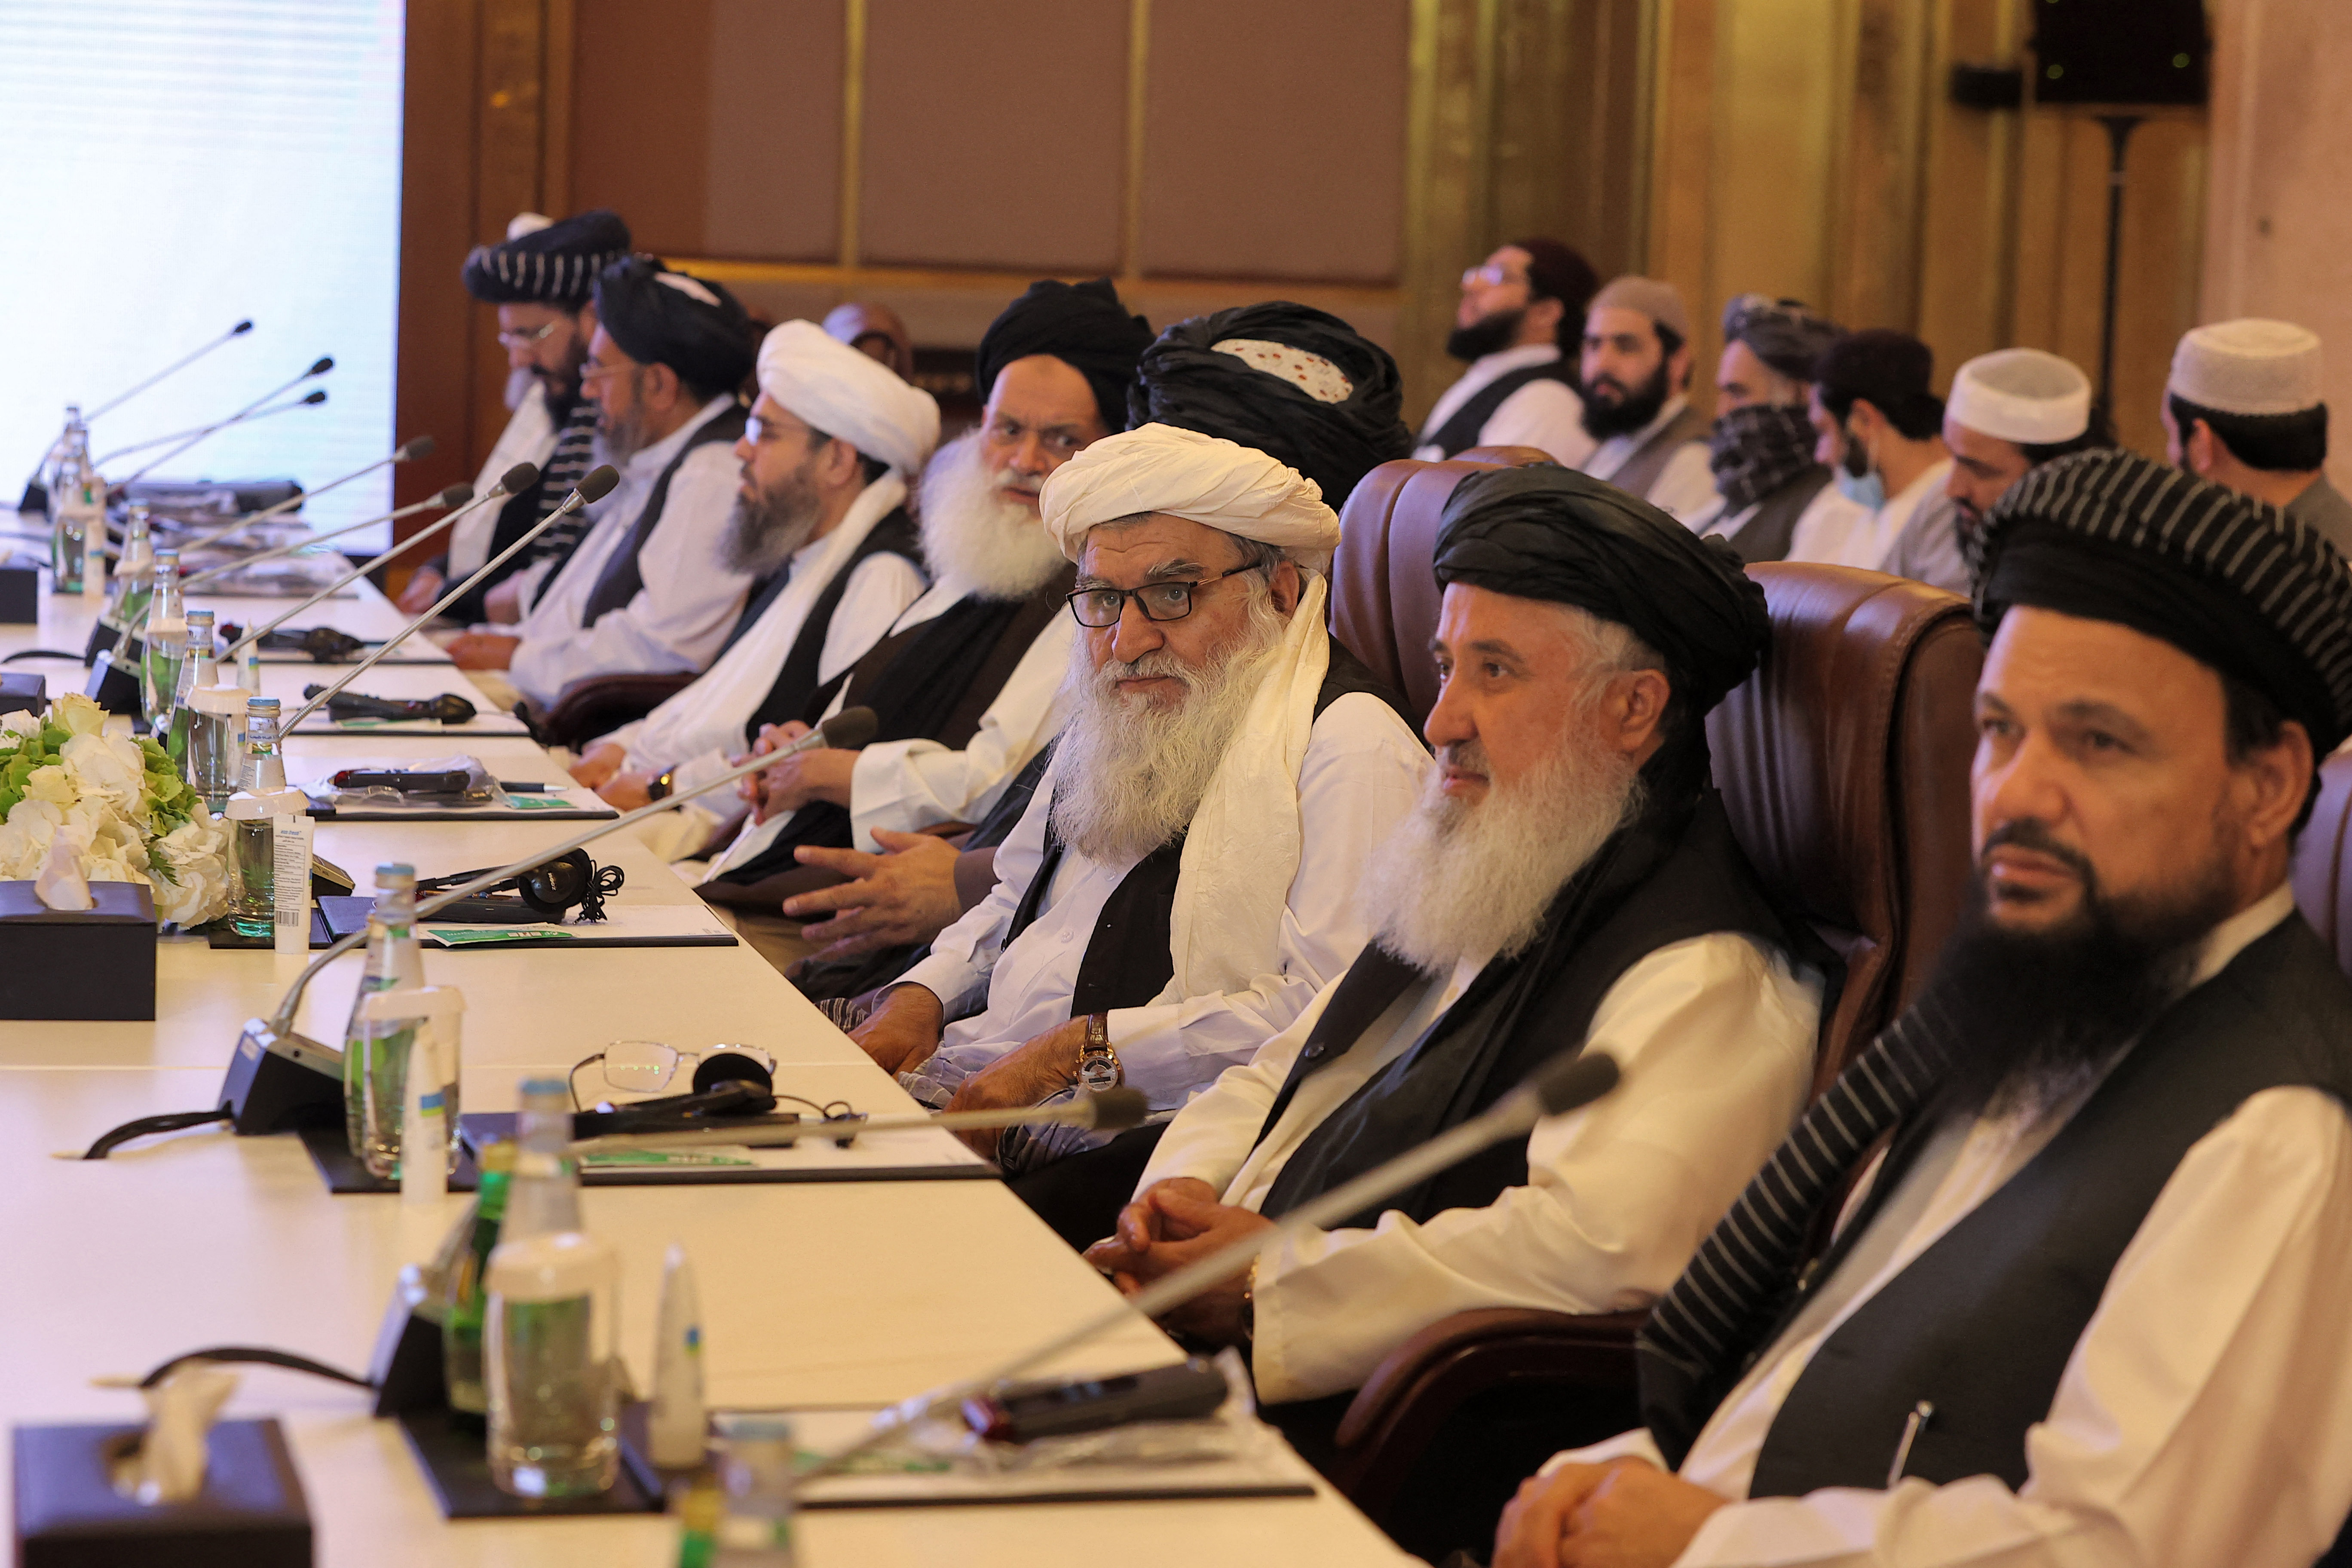 Members of the Taliban delegation look on during the presentation of the final declaration of the peace talks between the Afghan government and the Taliban in Qatar's capital Doha .(Photo by KARIM JAAFAR/AFP via Getty Images)